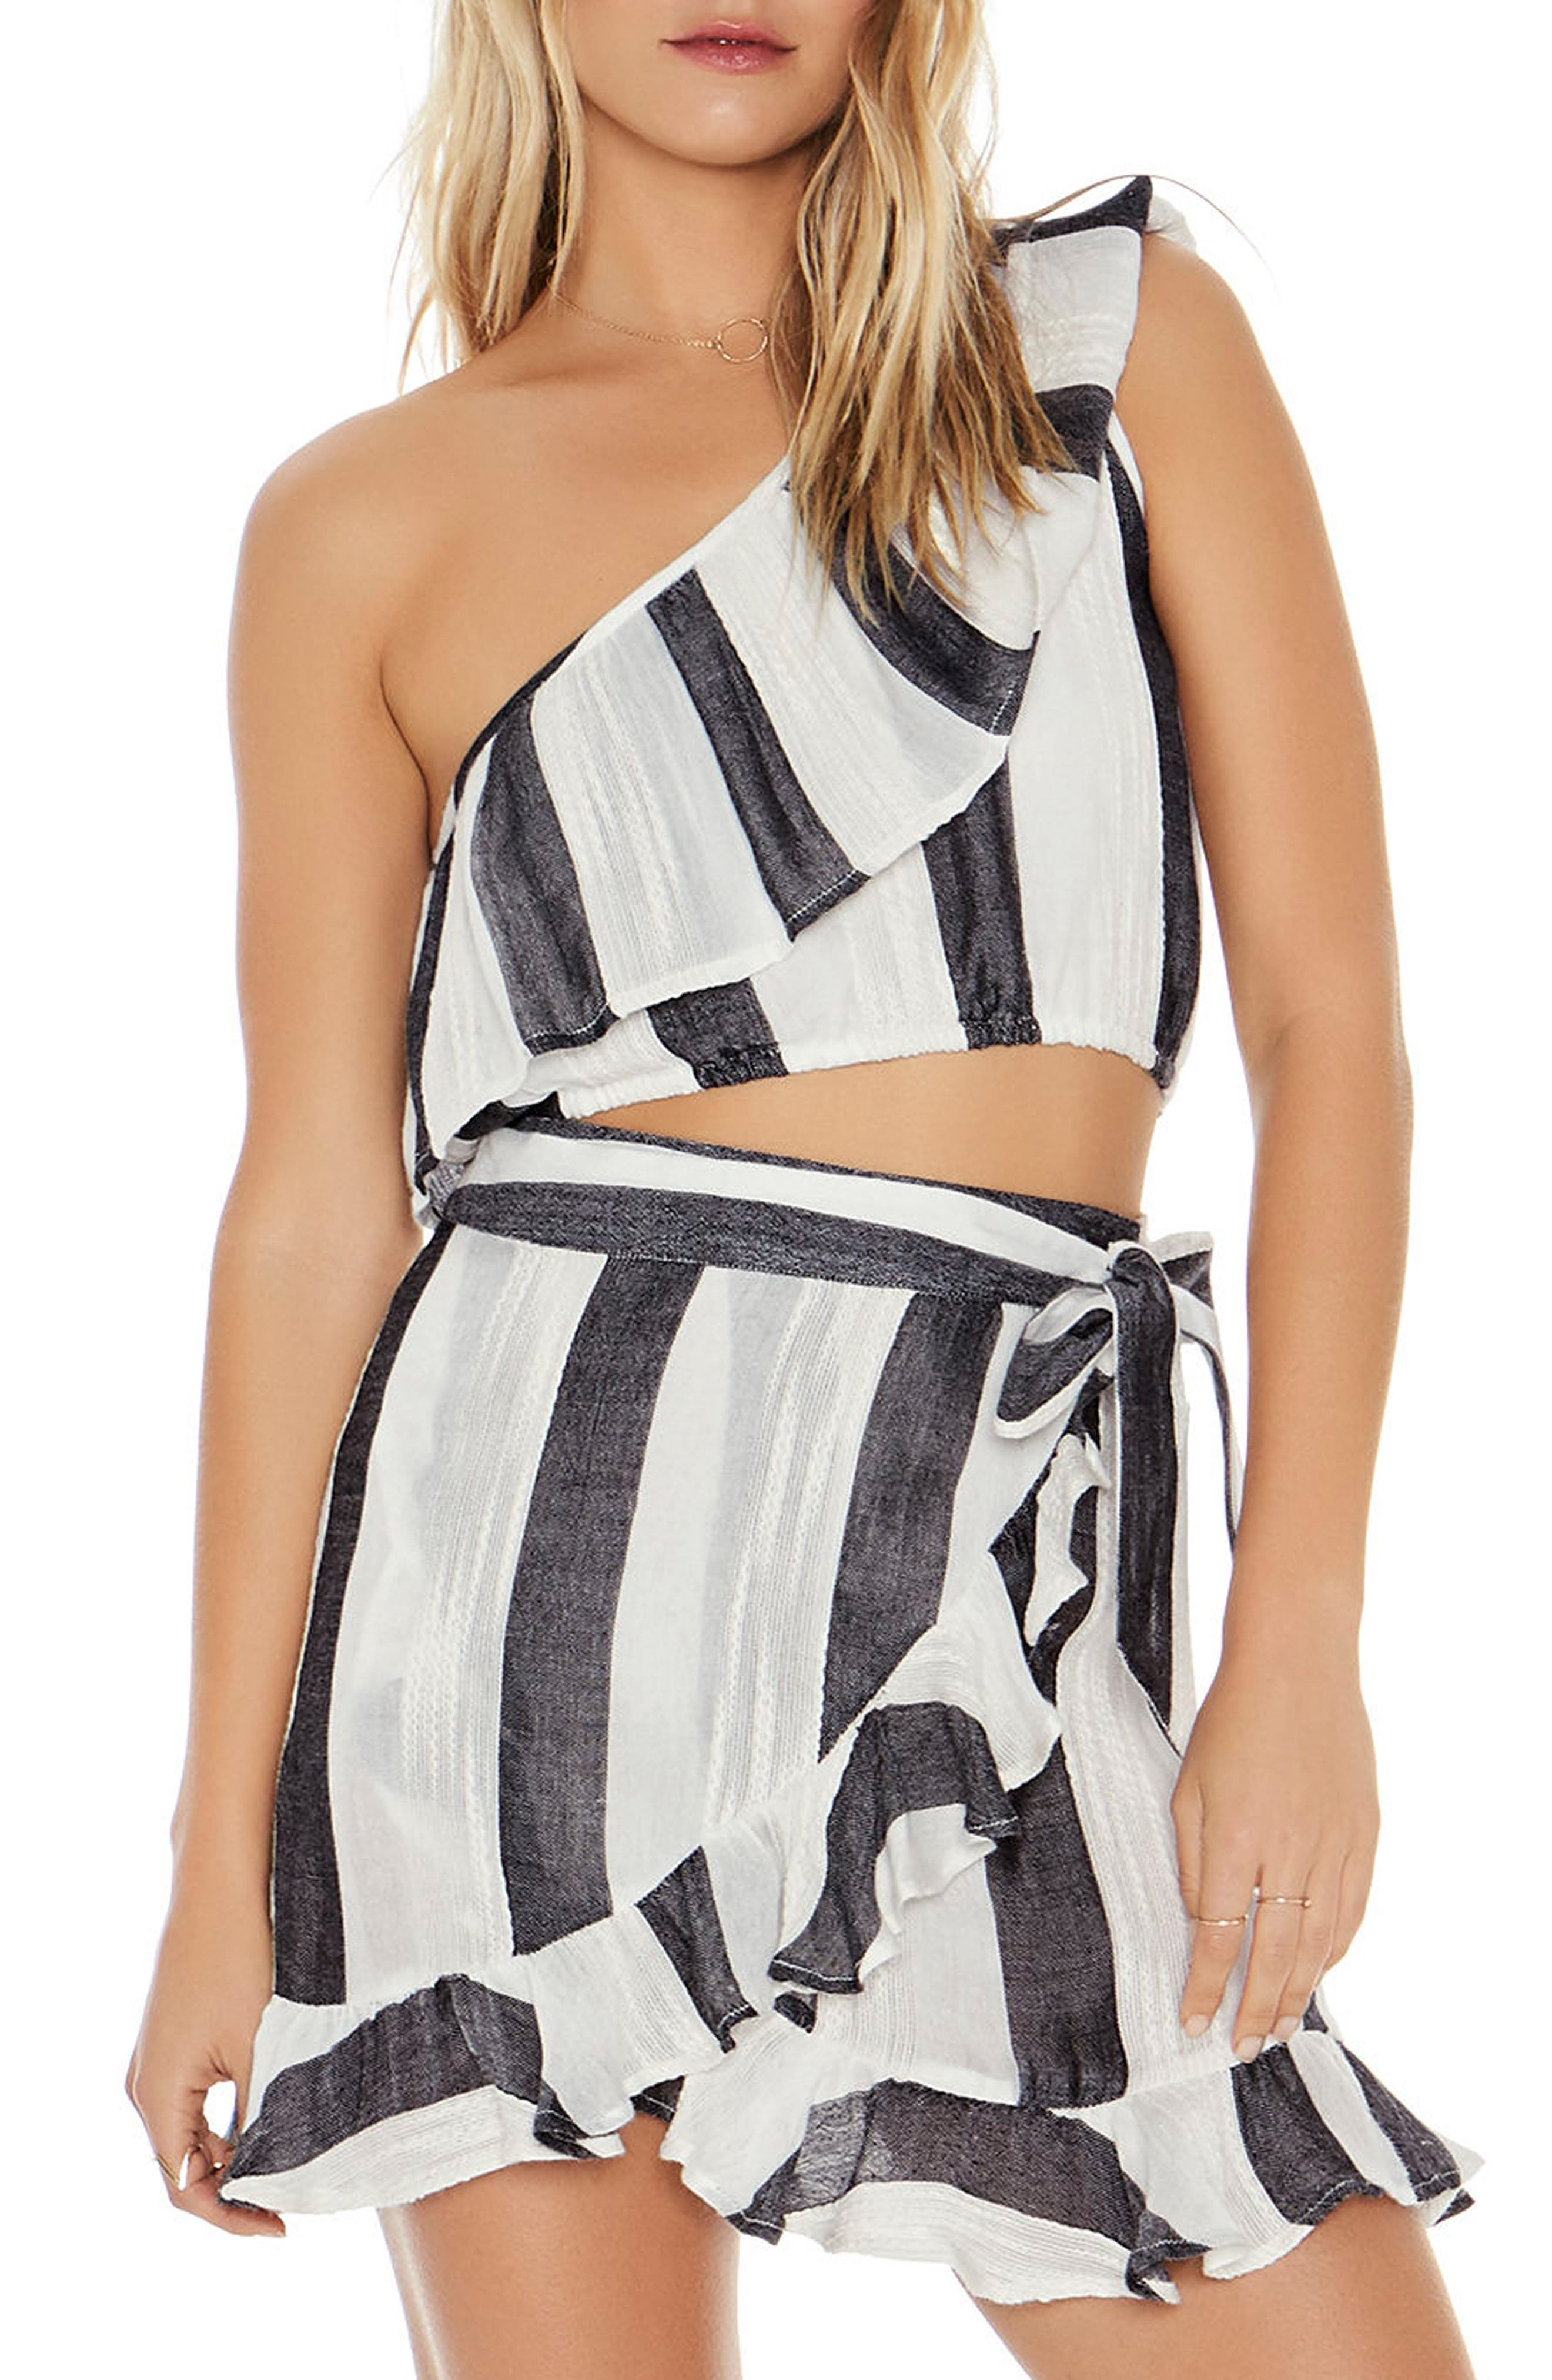 Alicia One-Shoulder Cover-Up Top,                             Main thumbnail 1, color,                             Beach Bum Stripe